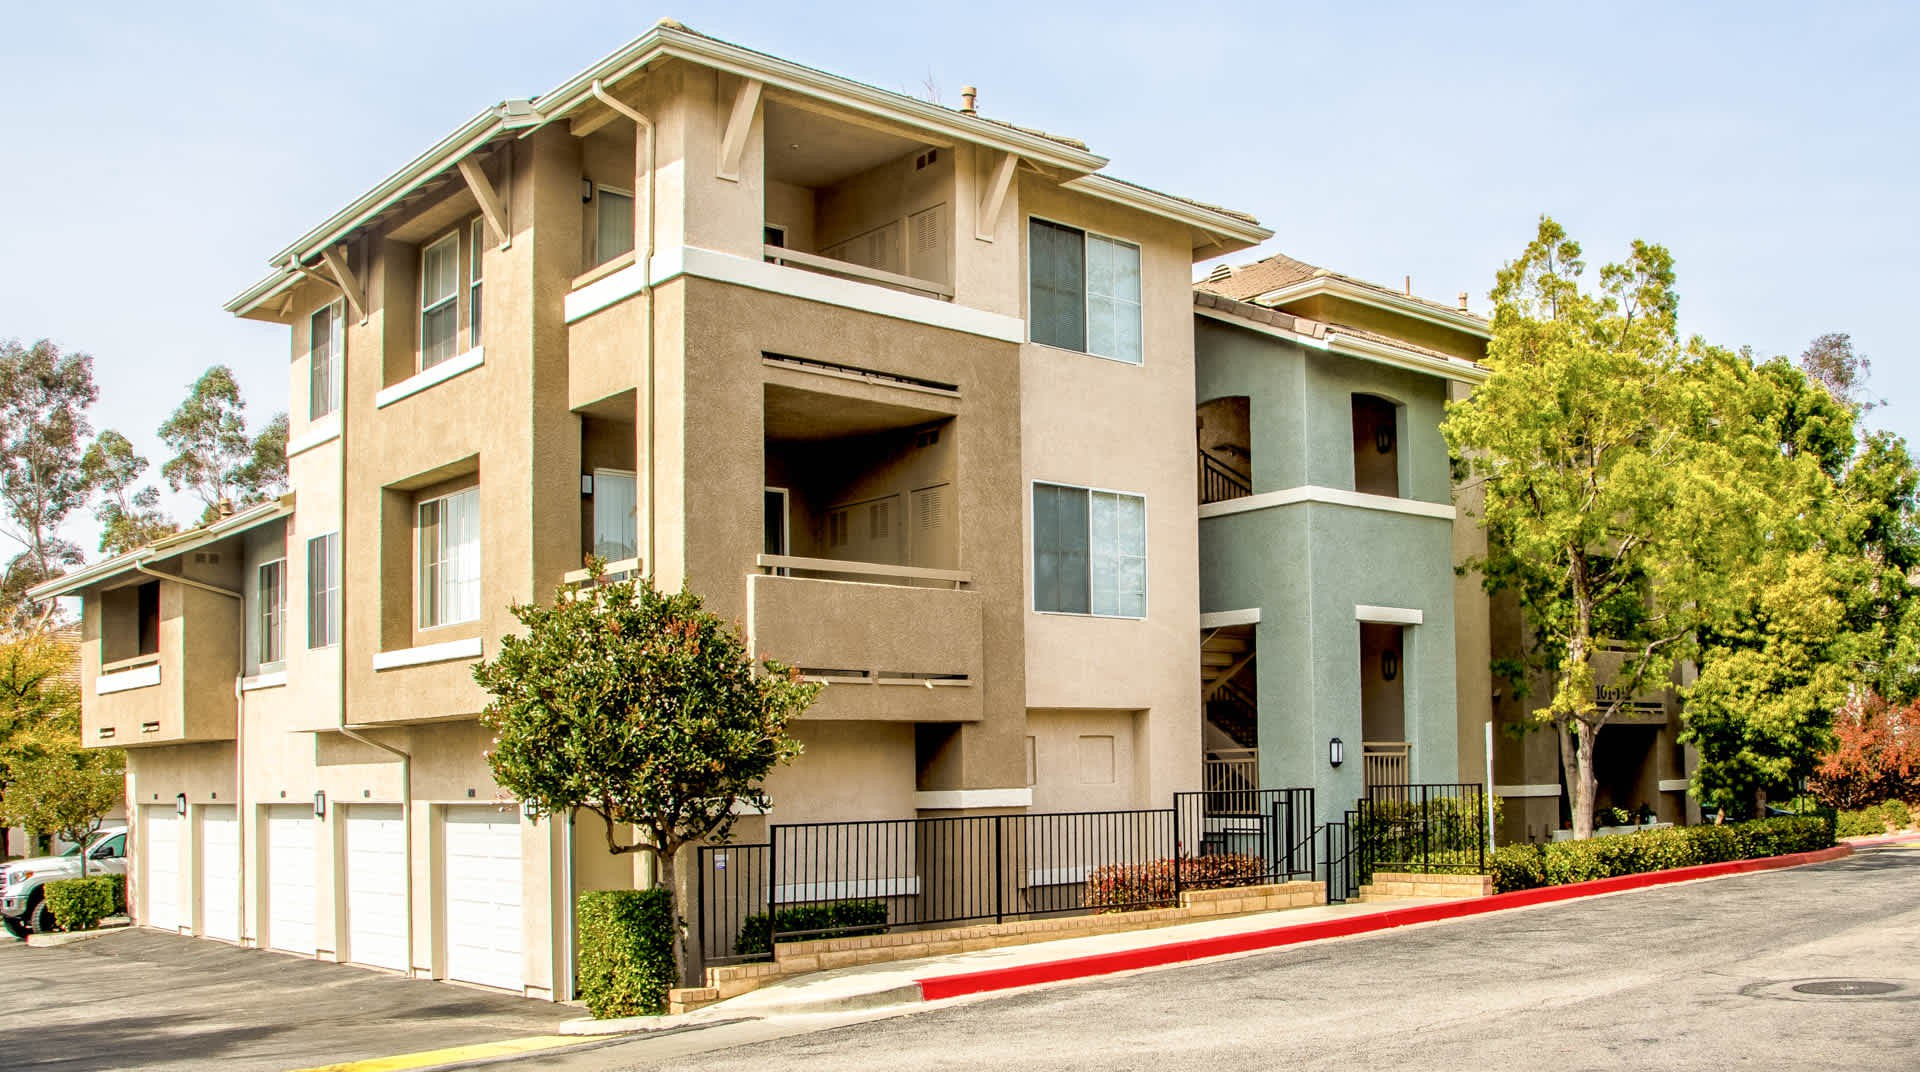 Apartments Near CalArts Skycrest for California Institute of the Arts Students in Valencia, CA